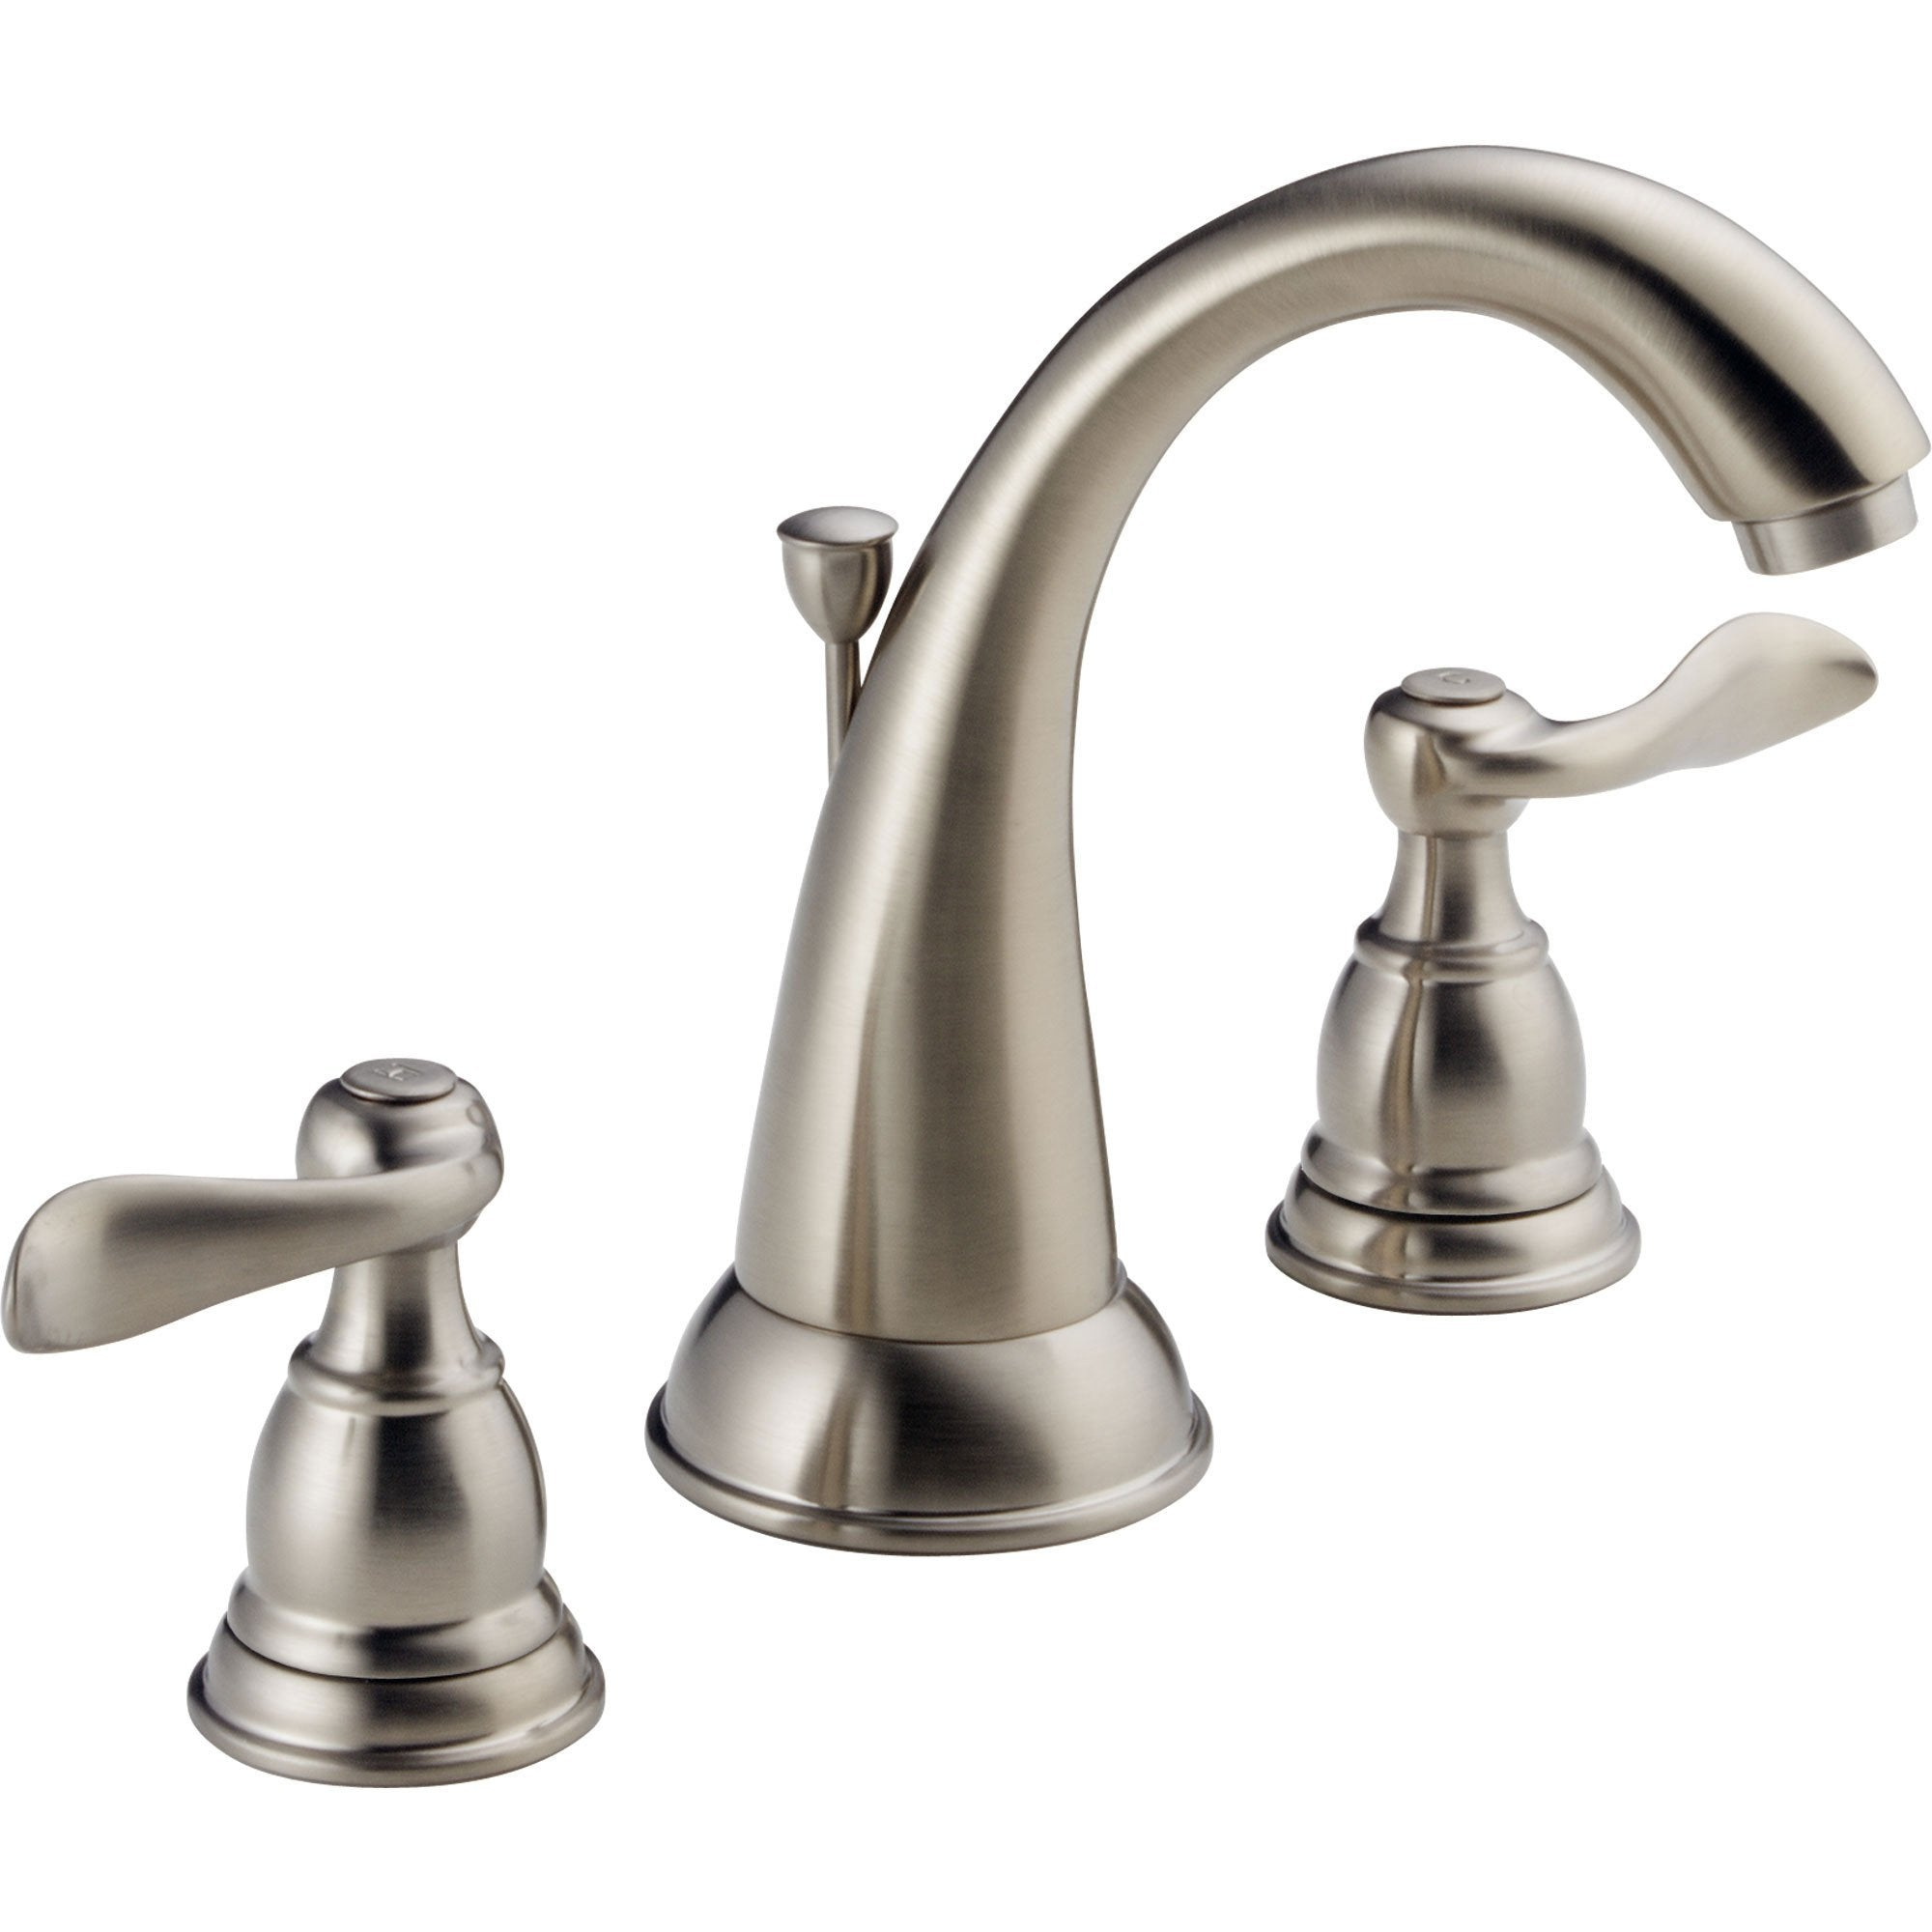 "Delta Windemere Stainless Steel Finish 8"" Widespread Bathroom Faucet 513626"